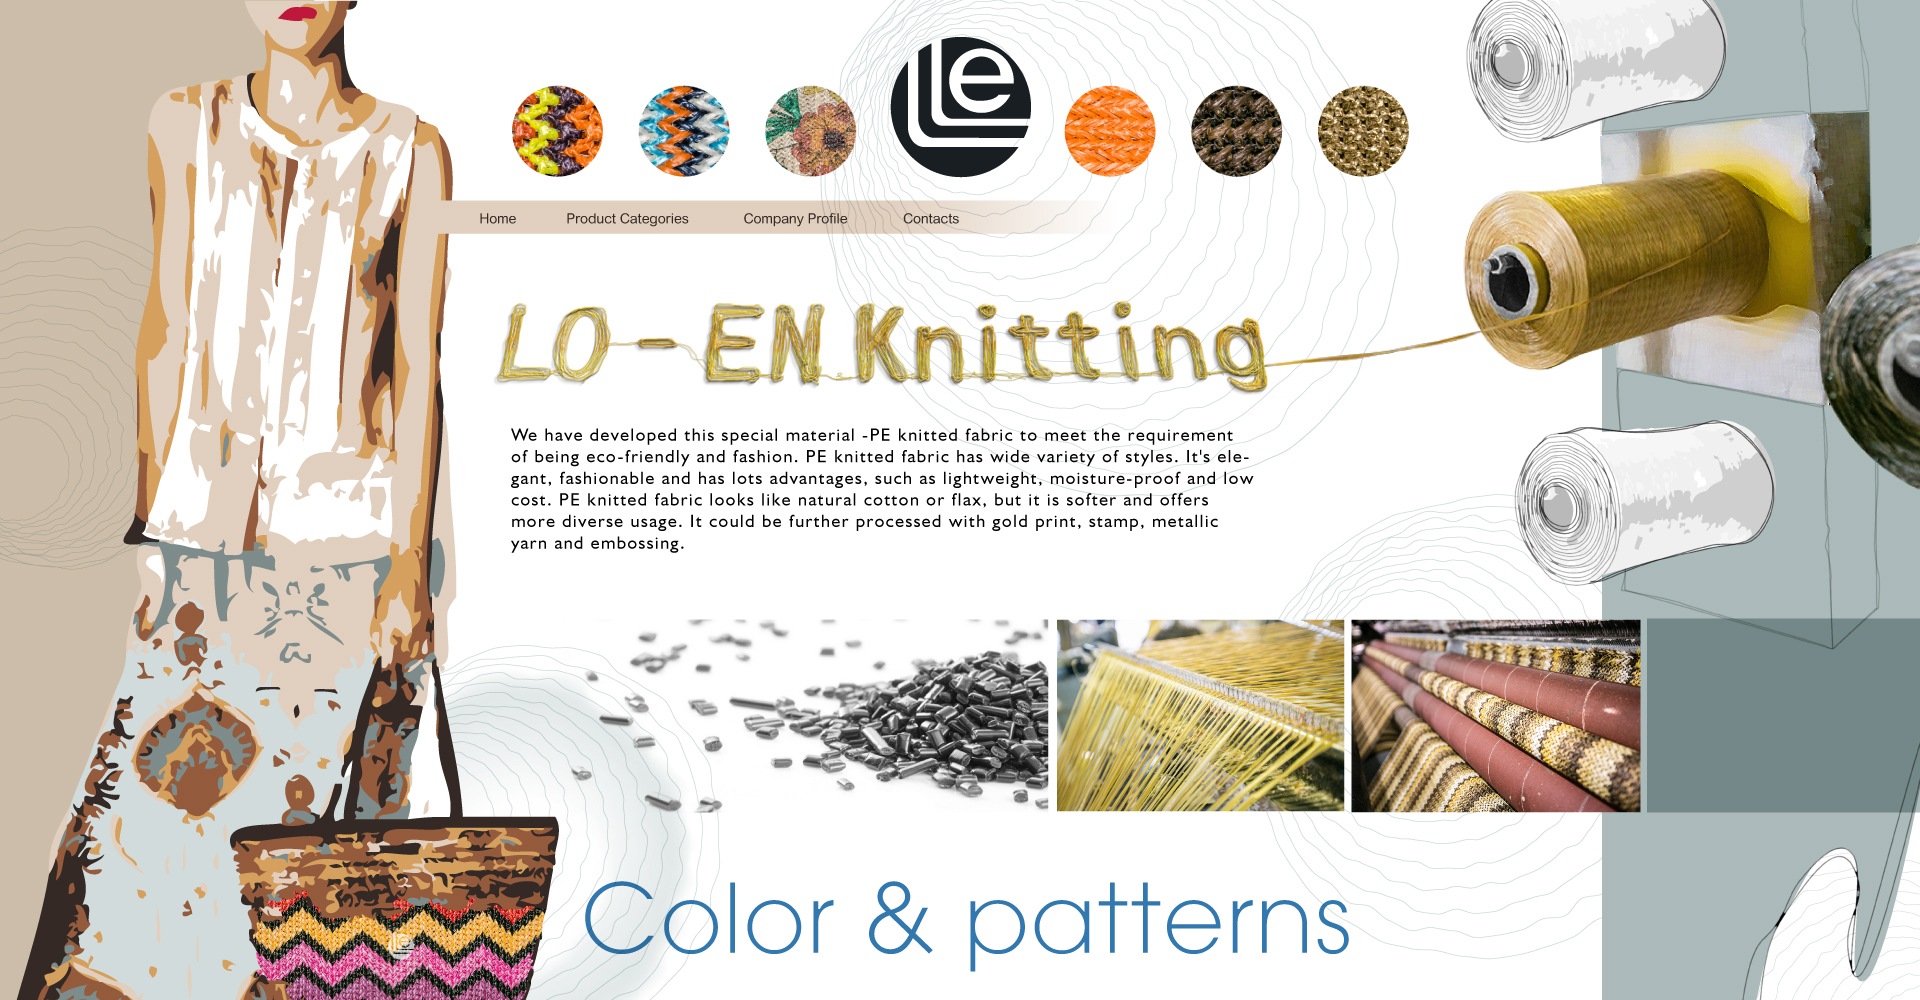 LEON knitting manufacture